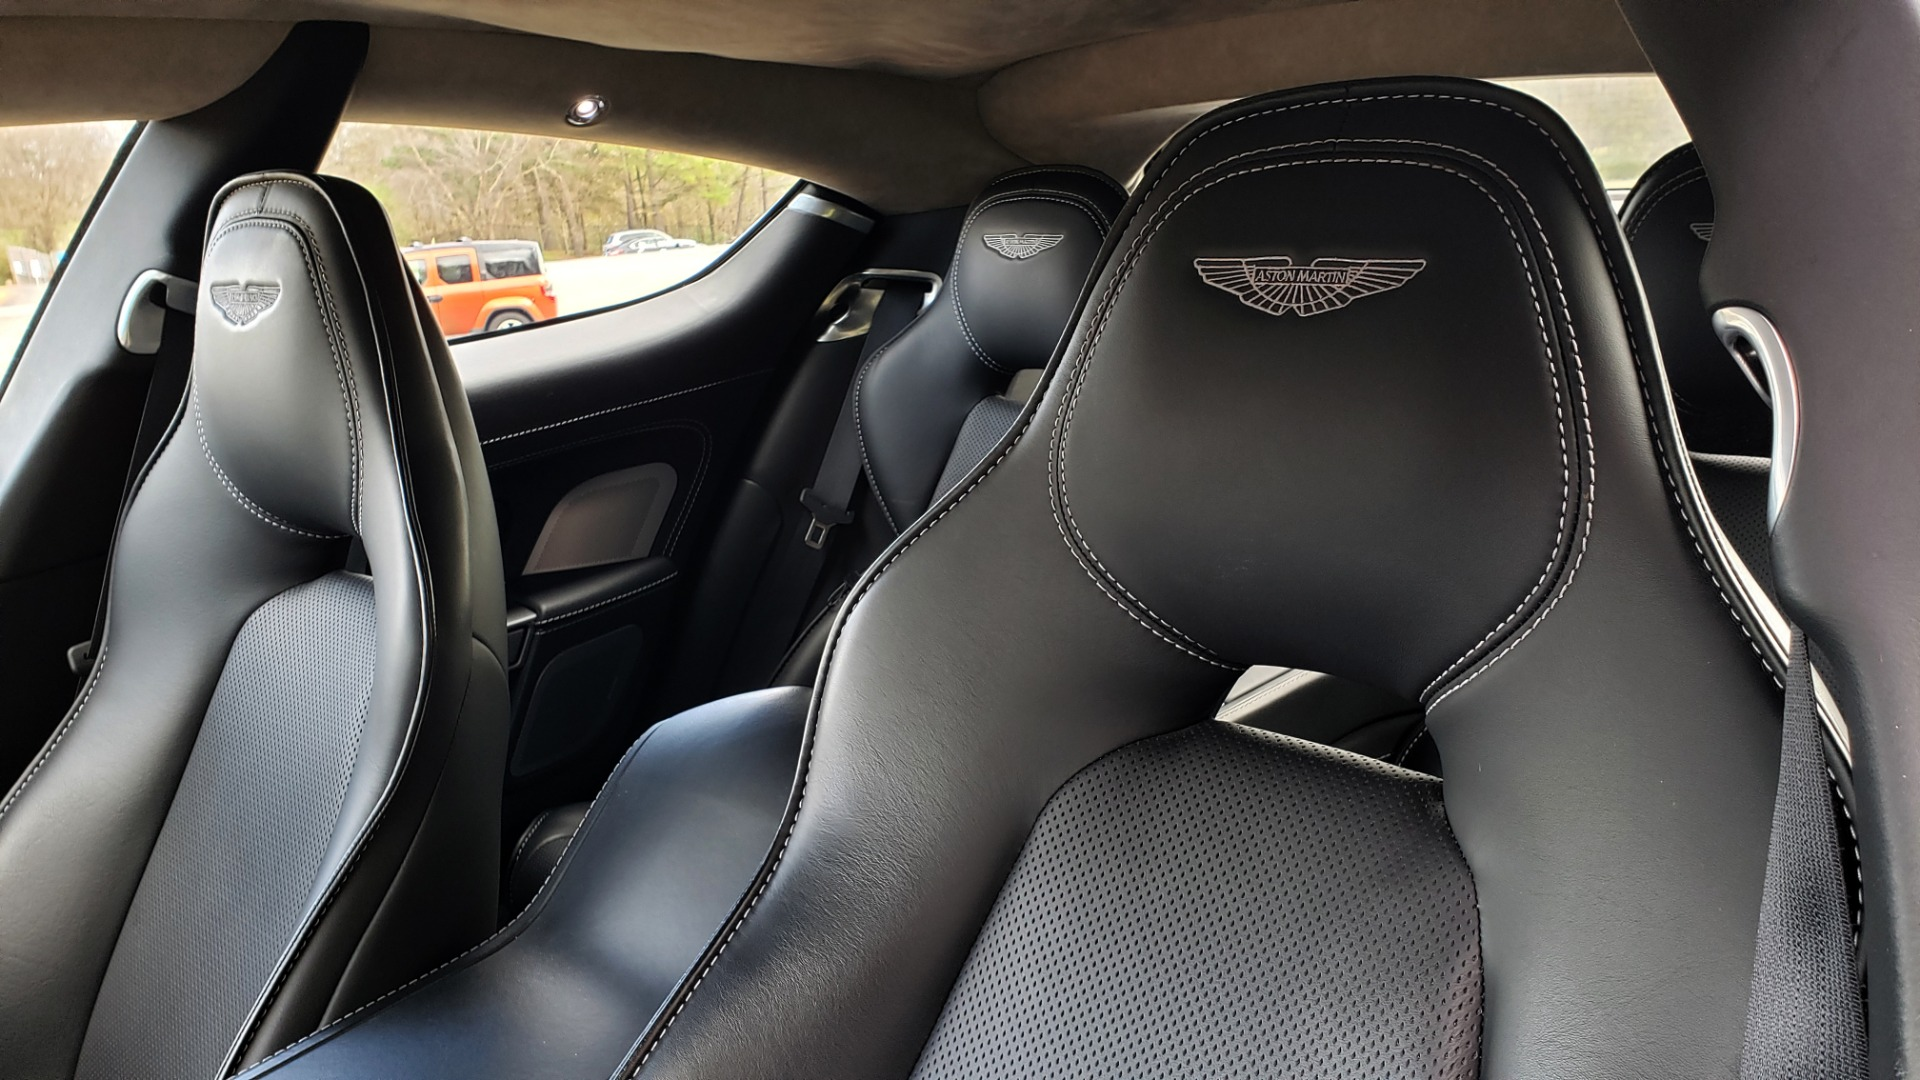 Used 2012 Aston Martin RAPIDE LUXURY 6.0L V12 / NAV / B&O SND / ENTERTAINMENT / REARVIEW for sale Sold at Formula Imports in Charlotte NC 28227 45